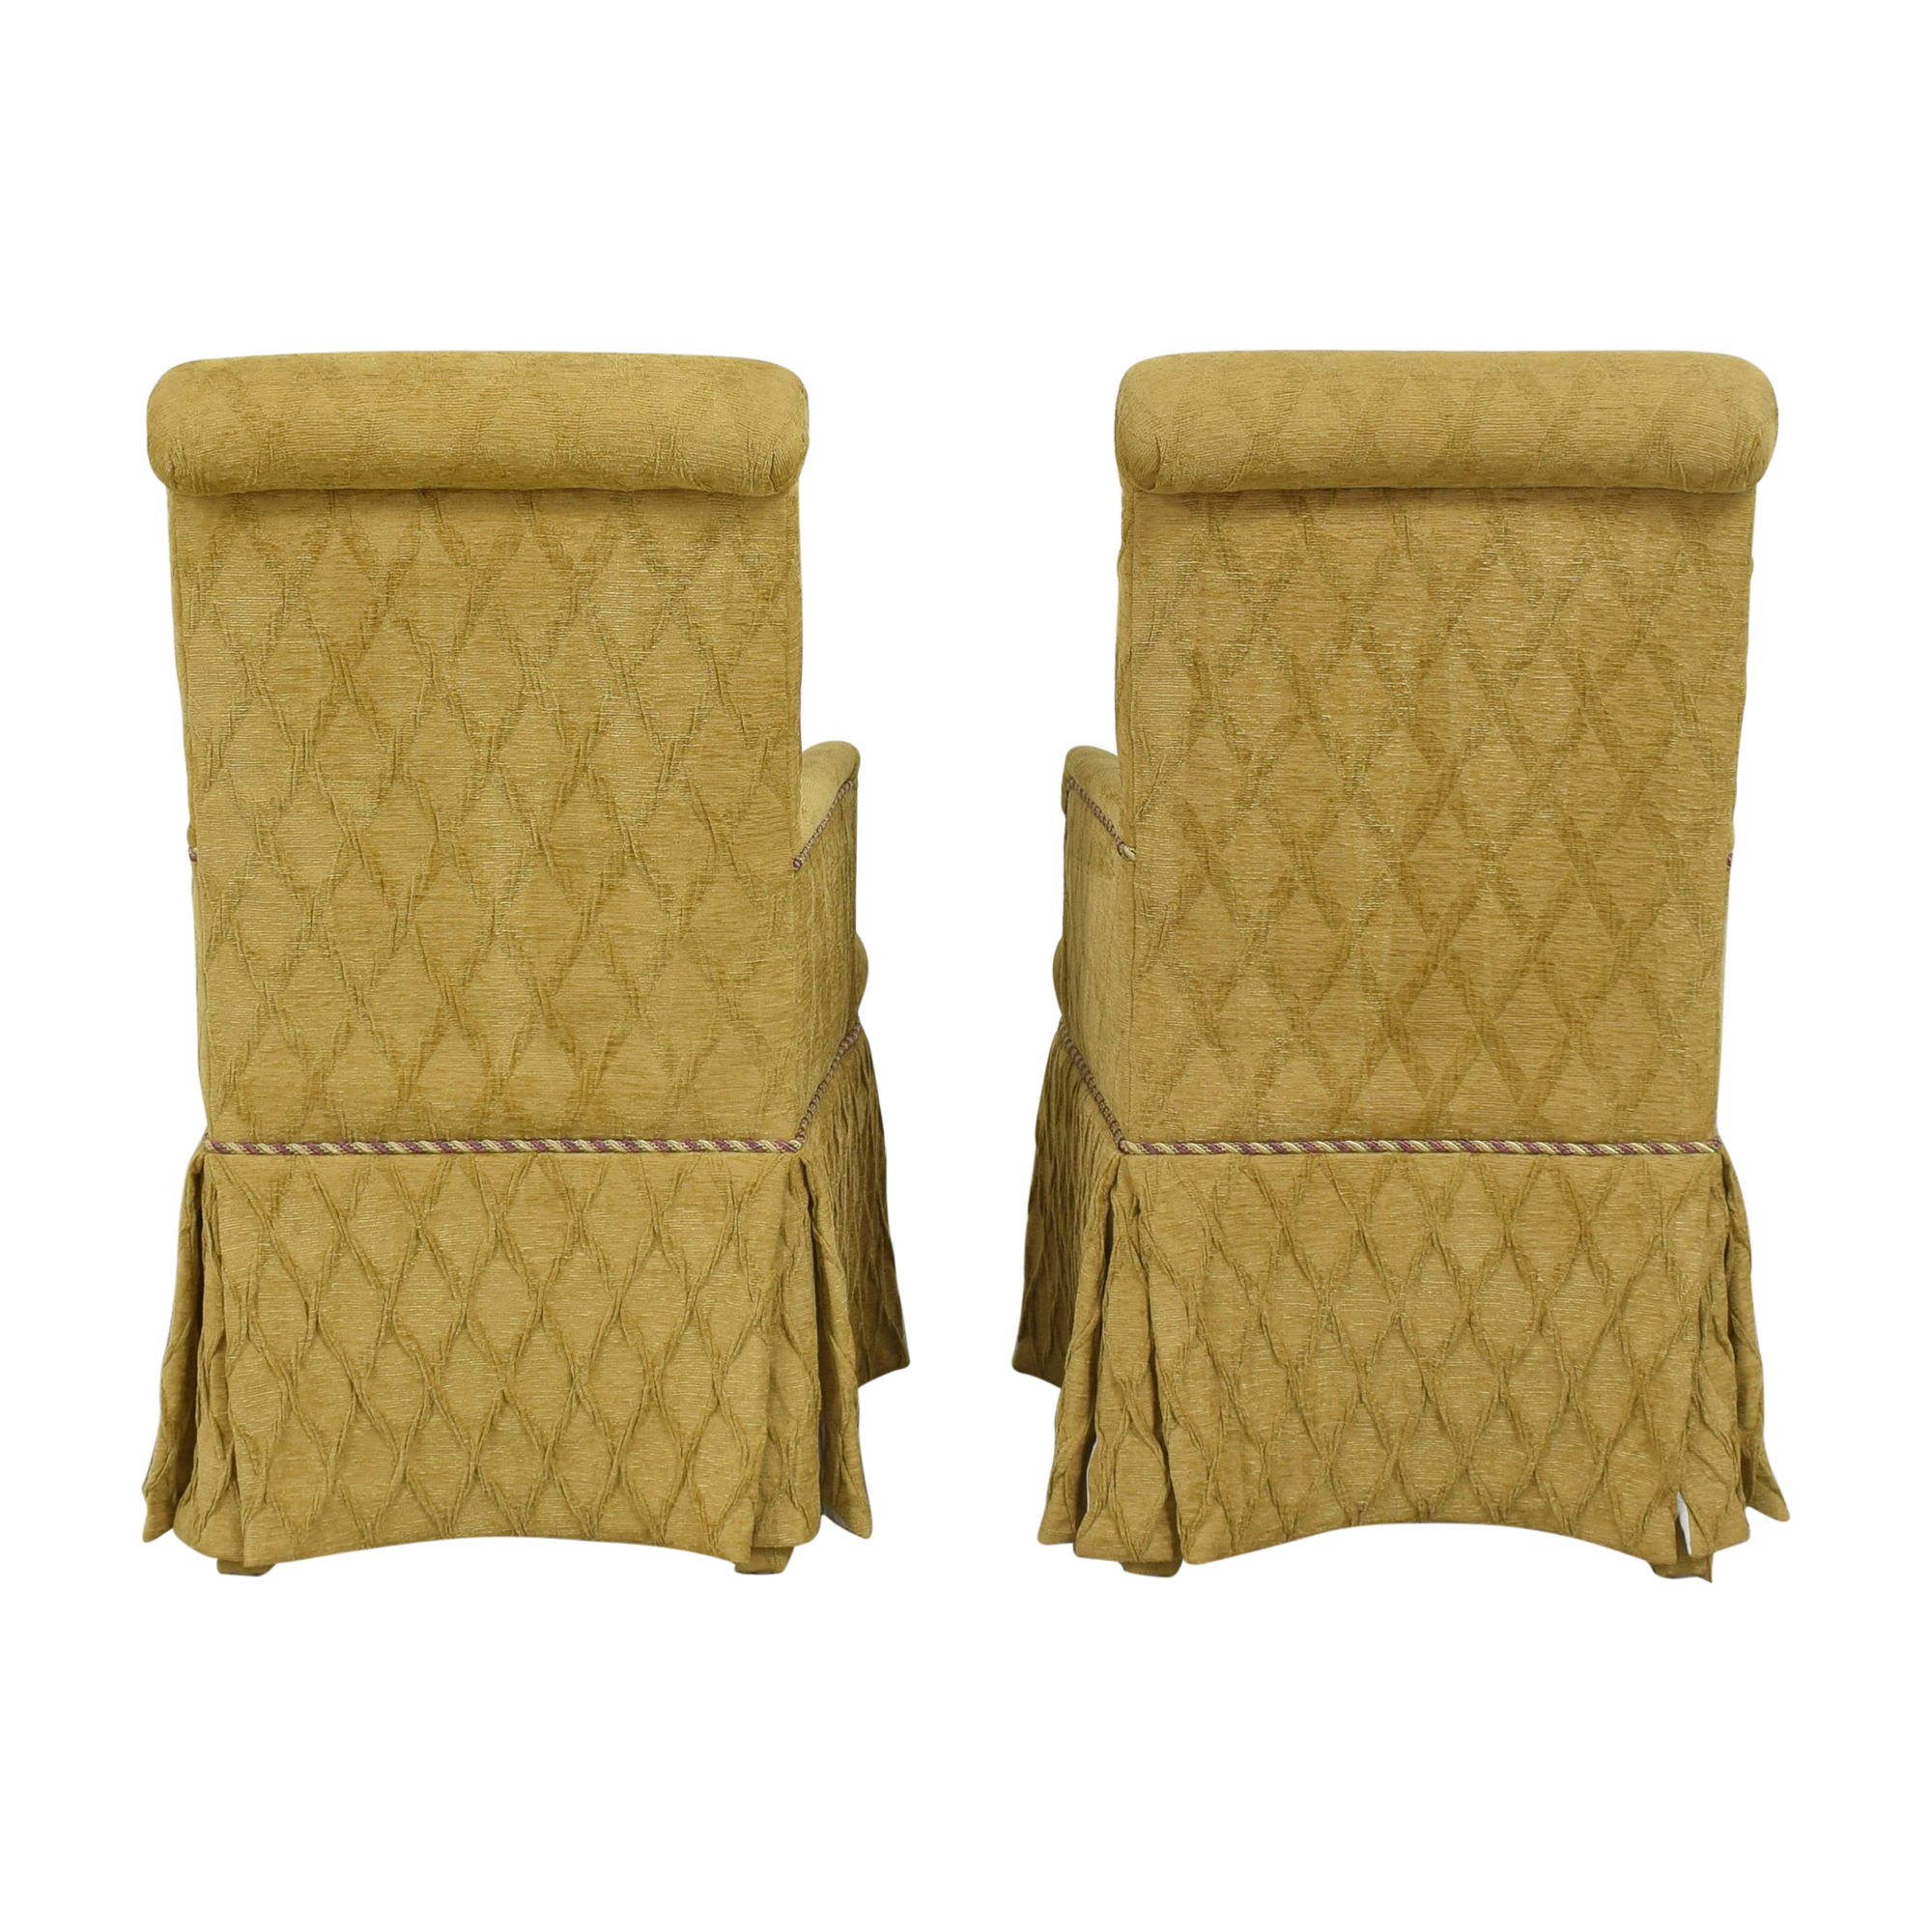 Charles Stewart Company Charles Stewart Company Skirted Dining Arm Chairs on sale